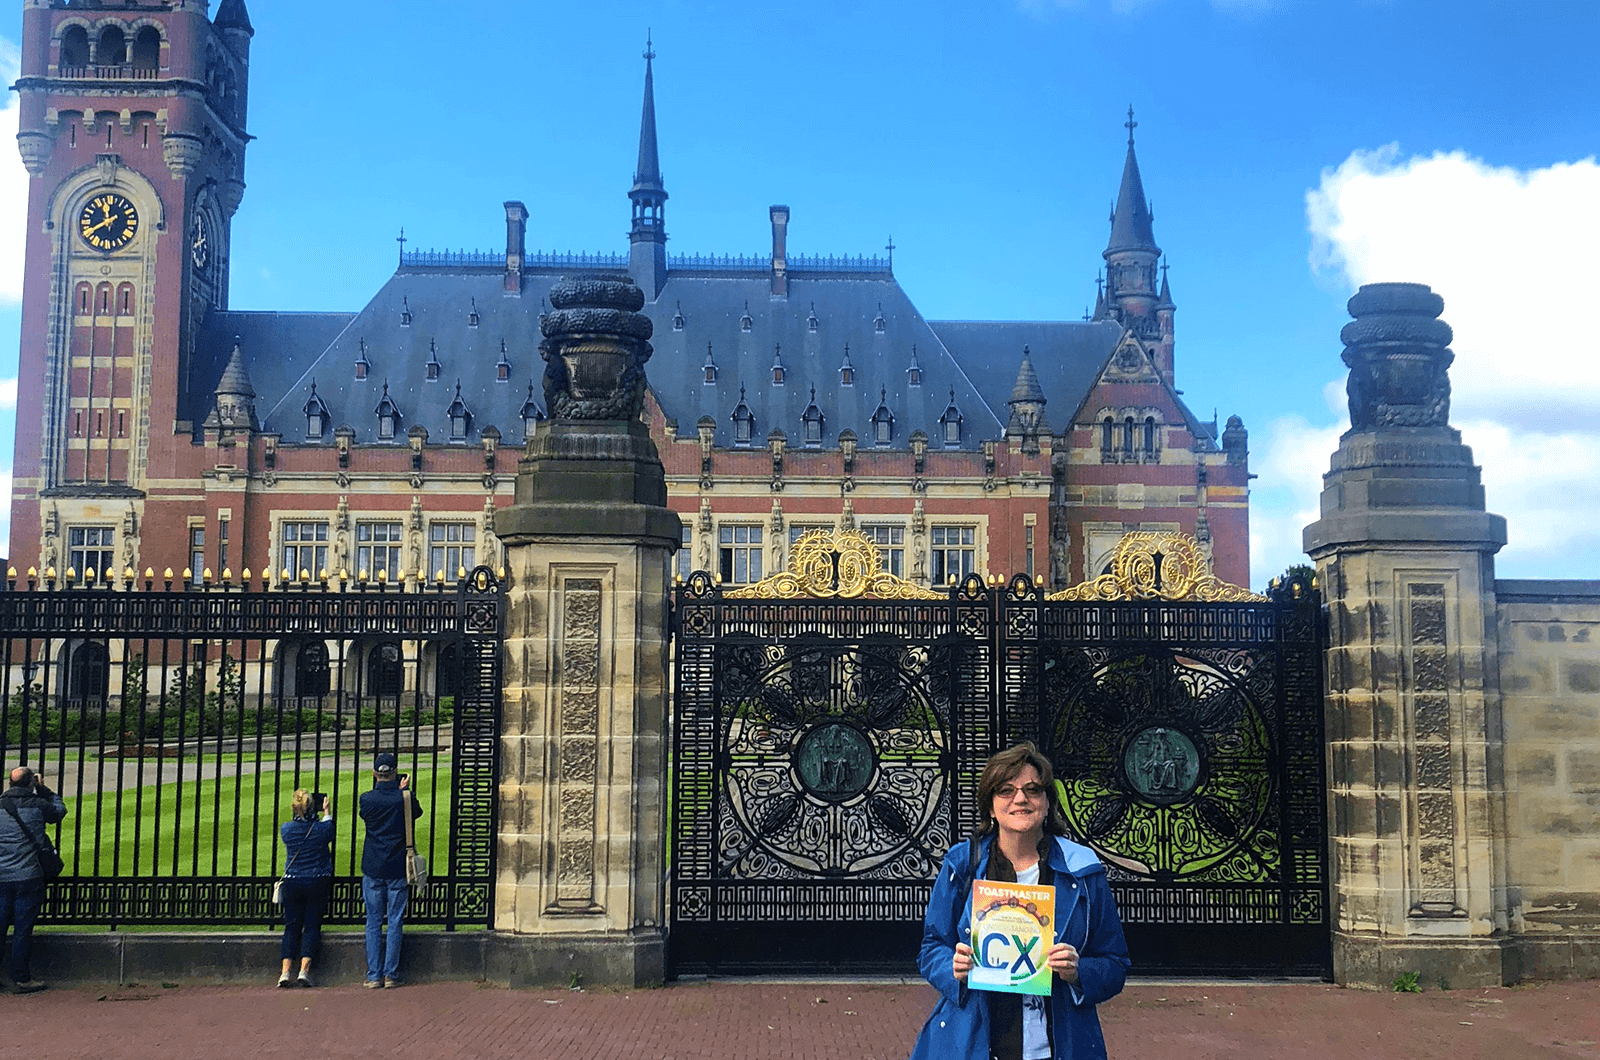 Andrea Patton of Houston, Texas, poses in front of the Peace Palace in The Hague, Netherlands. The Palace officially opened in 1913 and still houses the Permanent Court of Arbitration and the International Court of Justice.